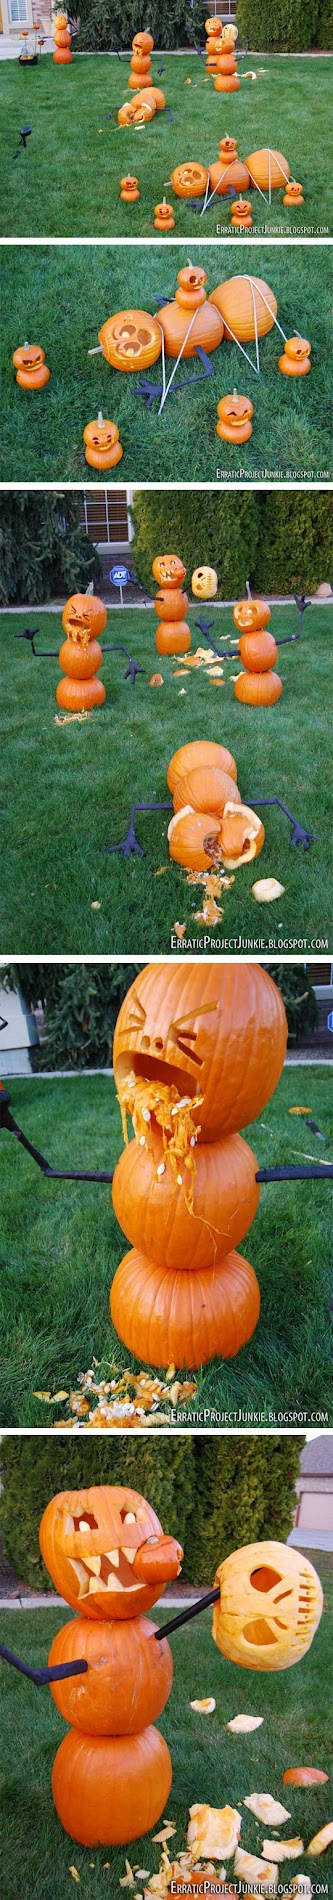 pumpkin massacre